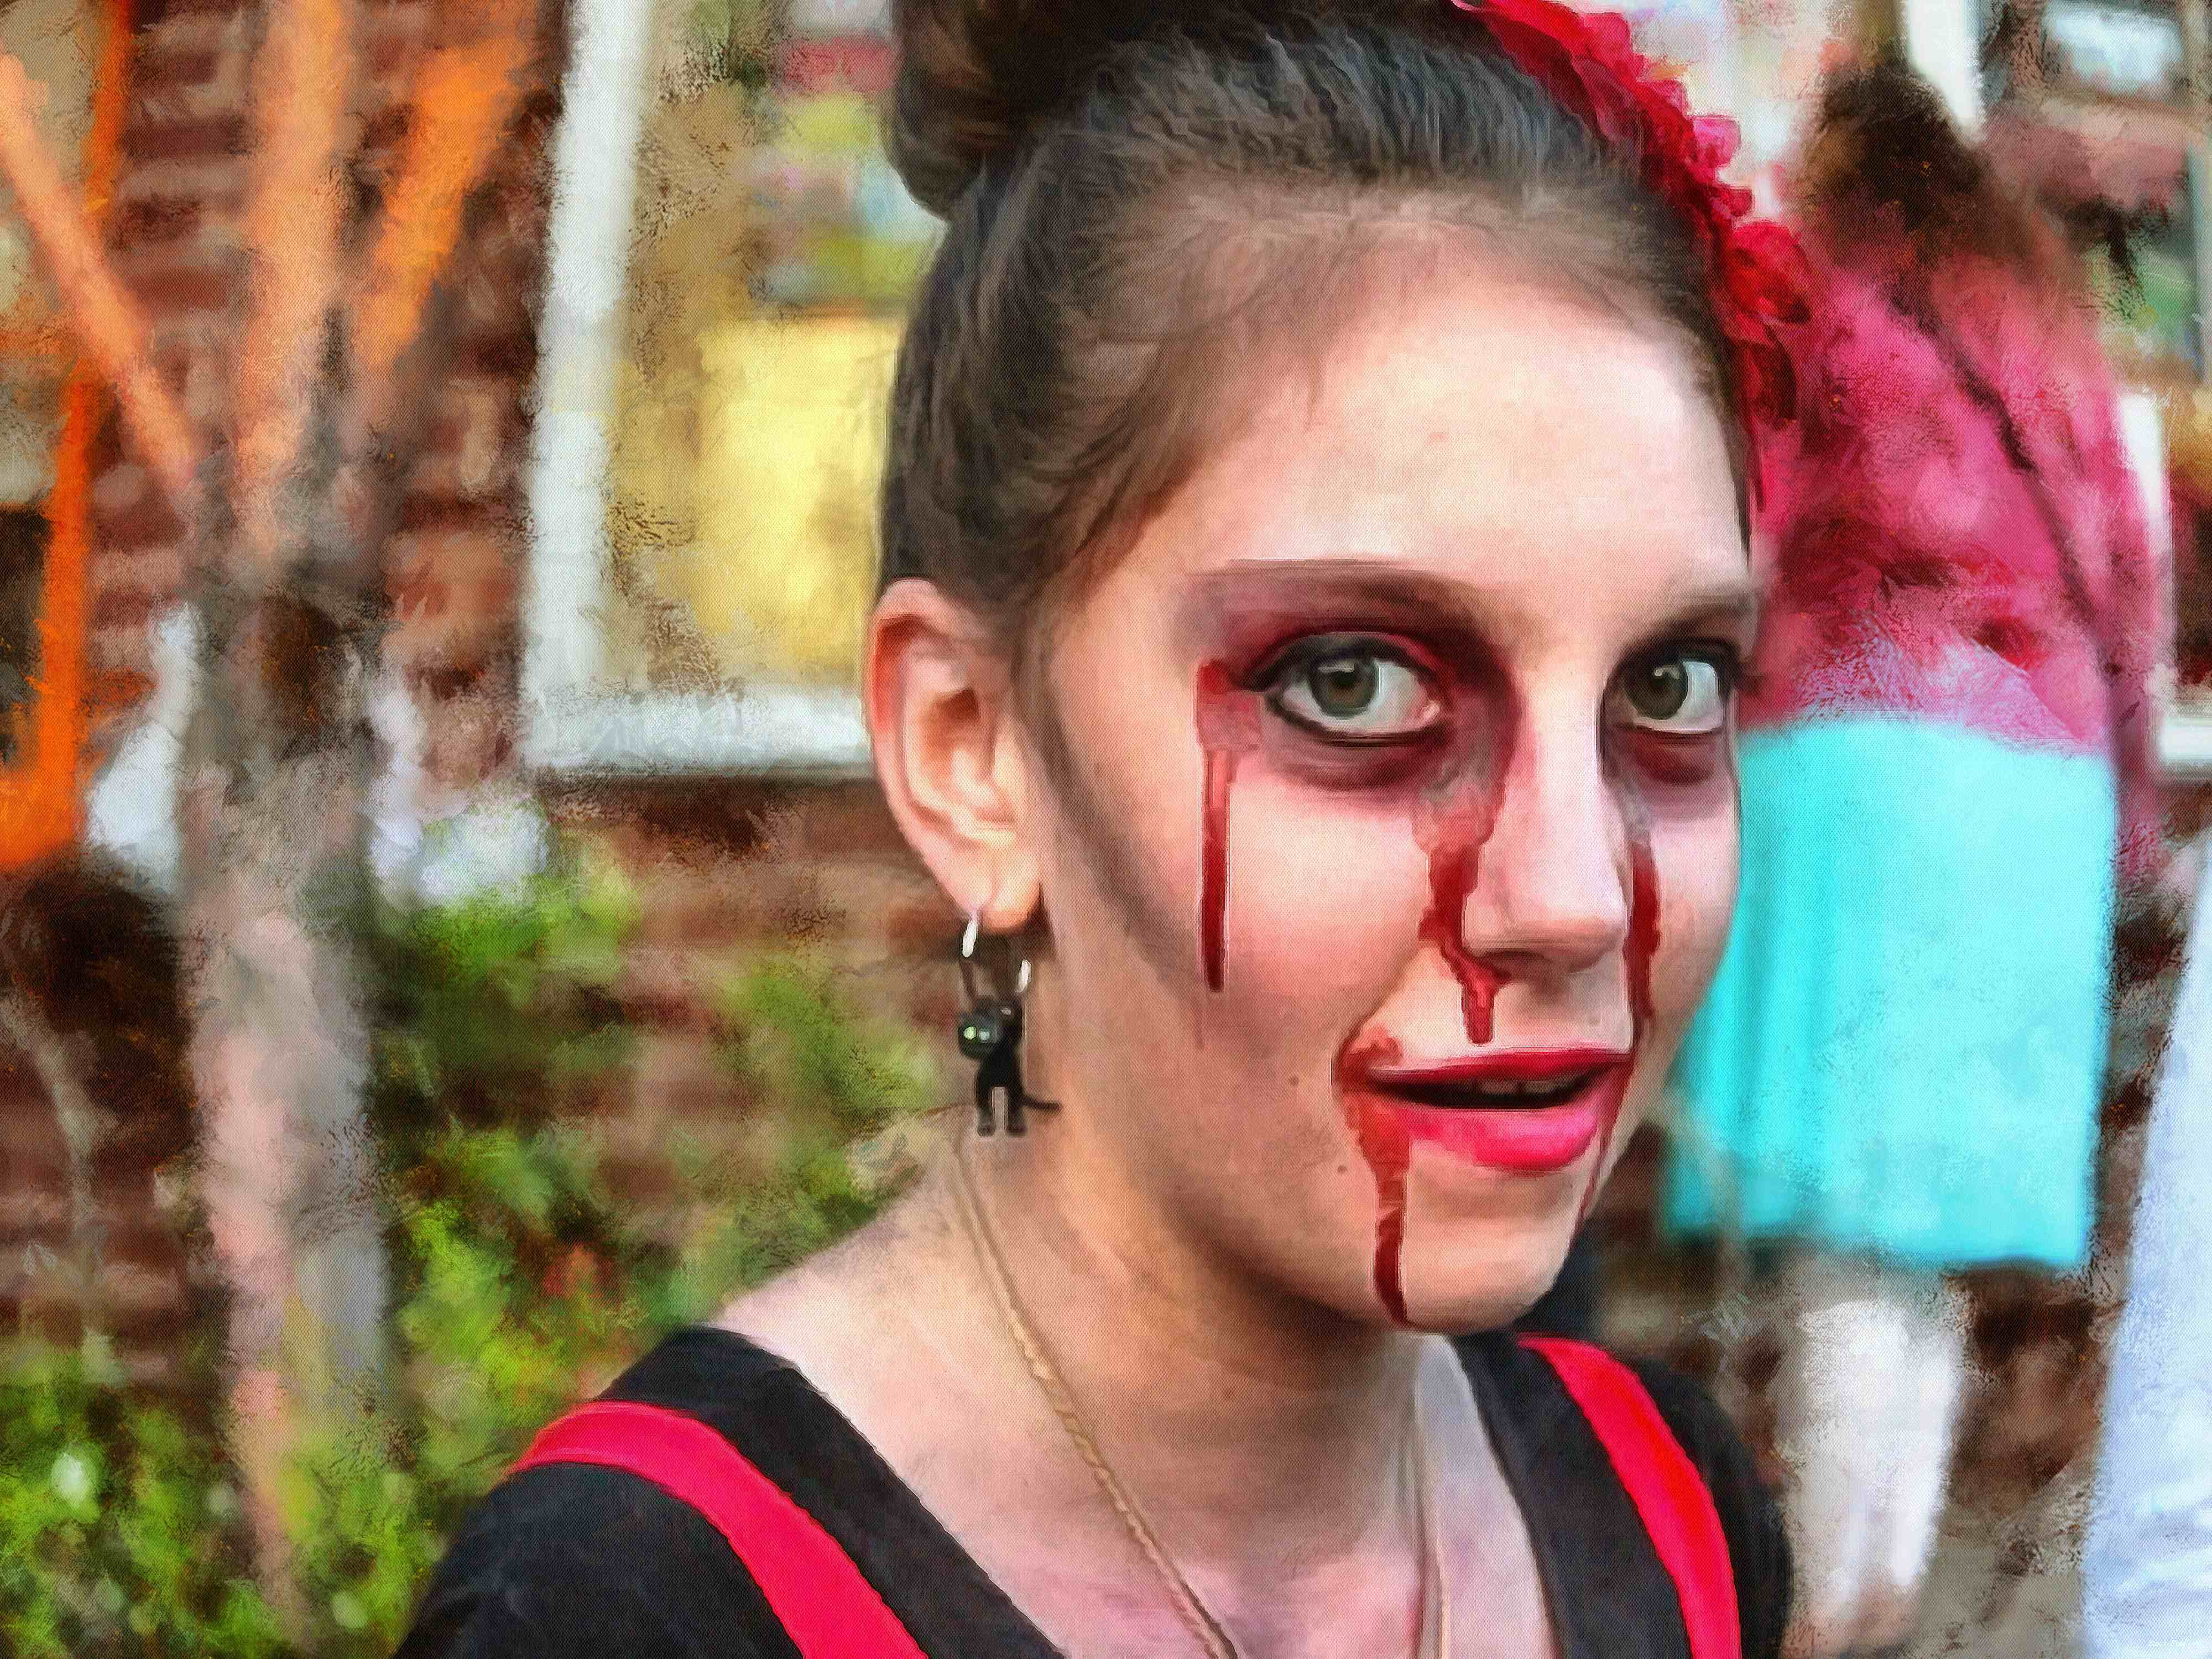 zombies, walking dead, dead, blood, monster, horror, disgusting, horrible, costume, halloween - stock free images, public domain, free images, download images for free, public domain photos, free stock image